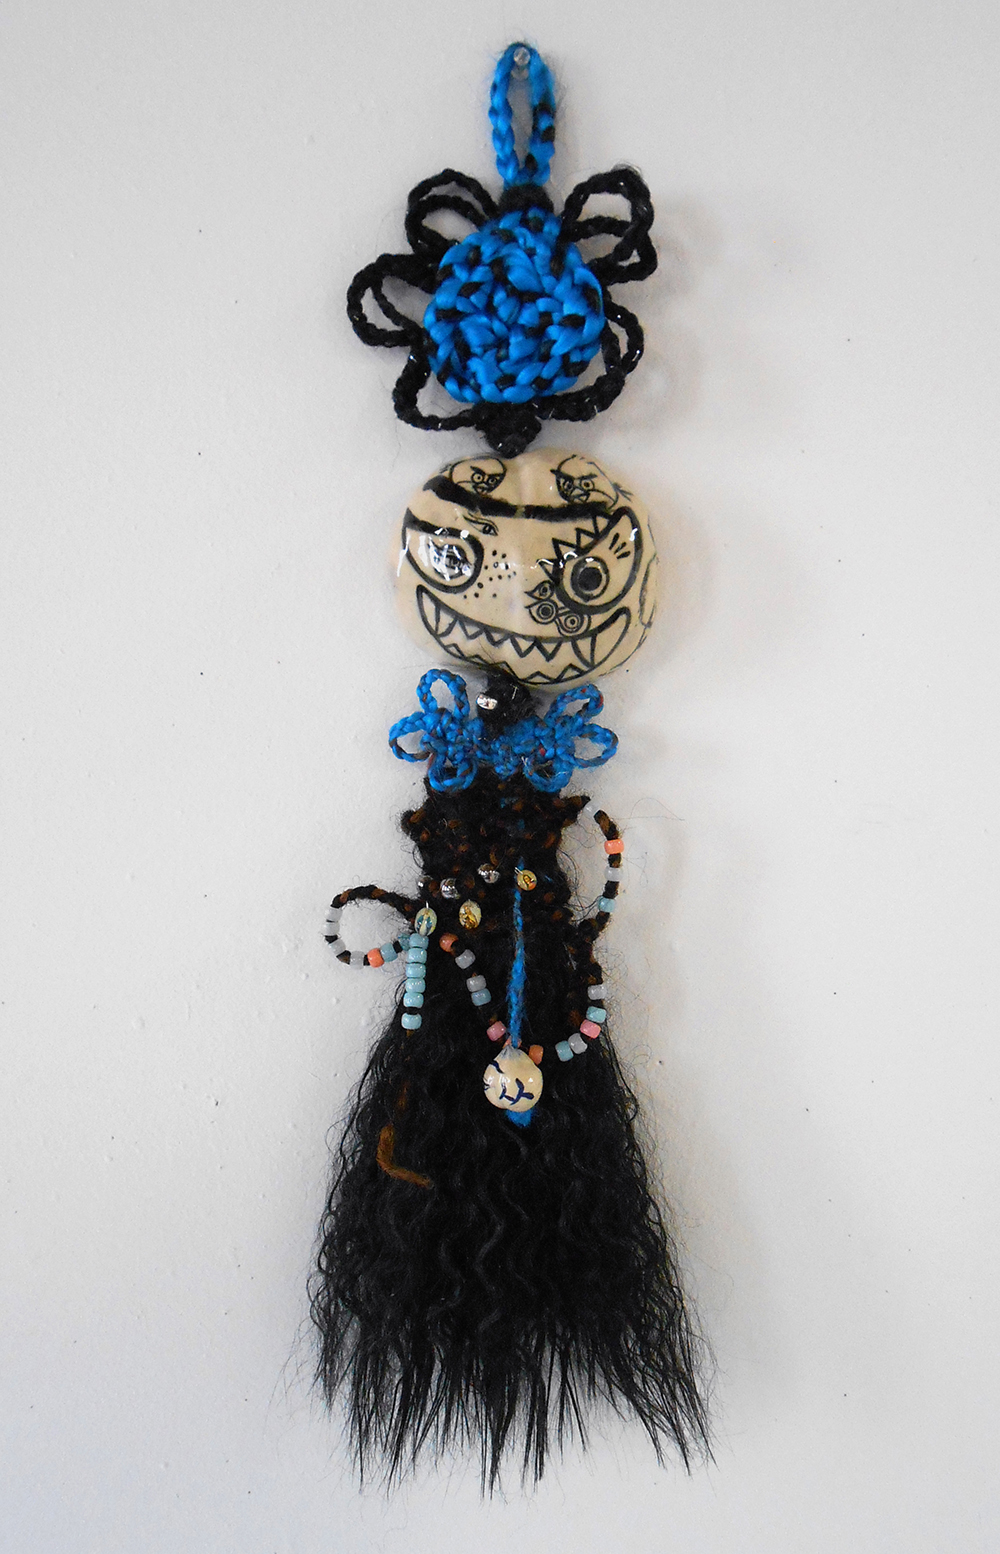 "Jiha Moon  Blue Maria  Ceramic, hand-knotted synthetic hair, pony and plastic beads, found objects, wire 26"" x 6"" x 3"" 2014"